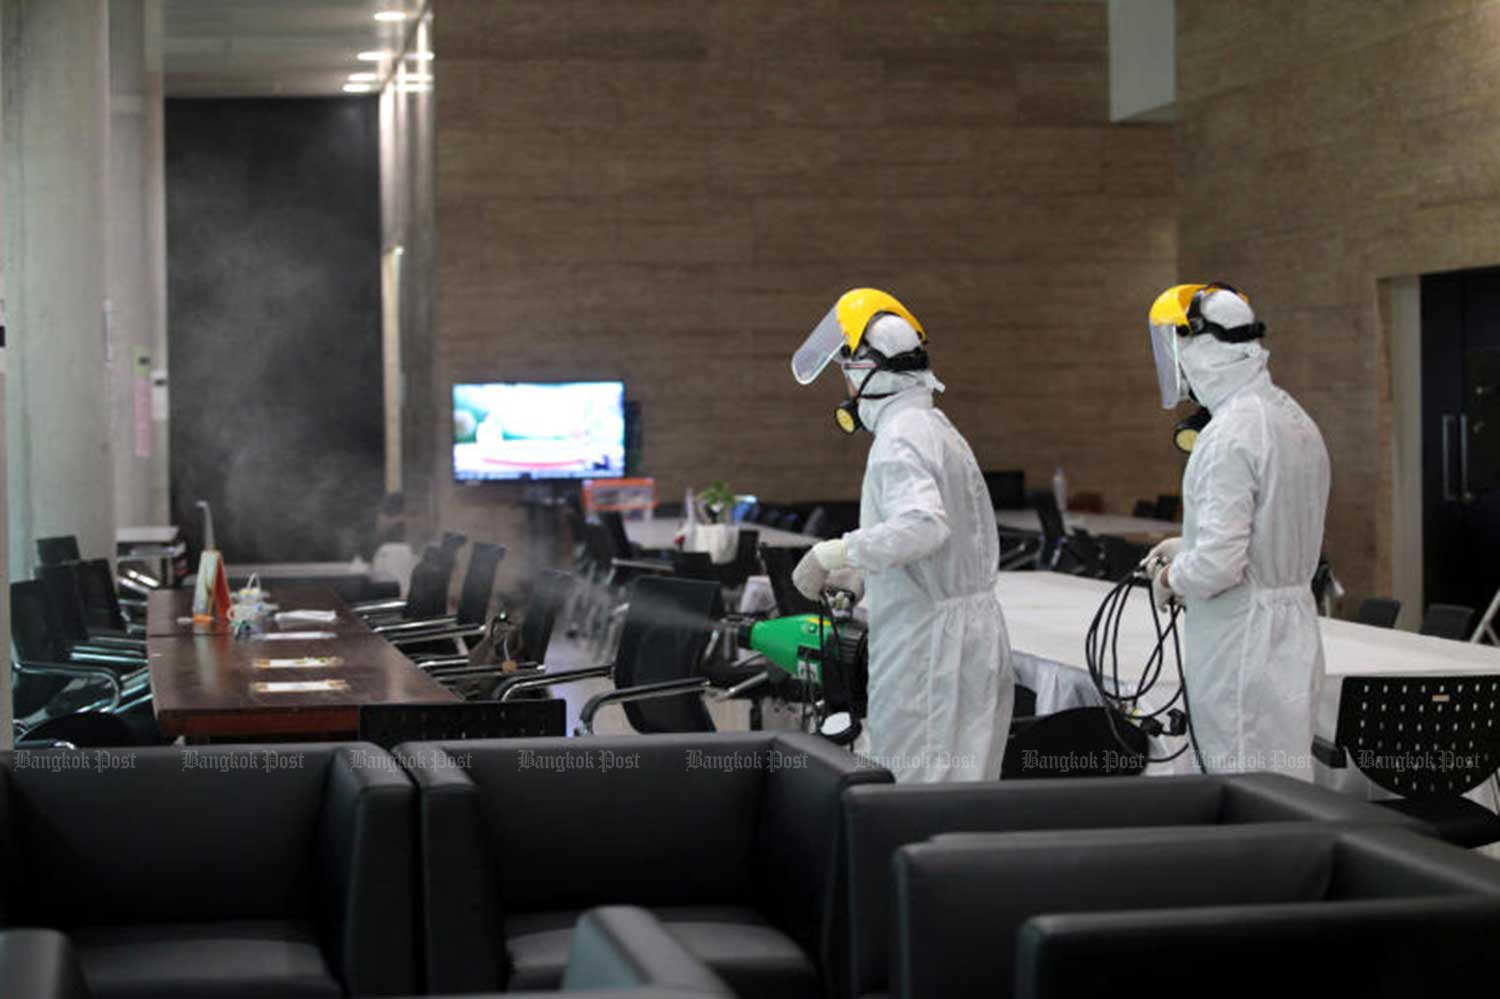 Officials spray disinfectant in the press room at Parliament, to help prevent the spread of Covid-19. (Photo by Chanat Katanyu)